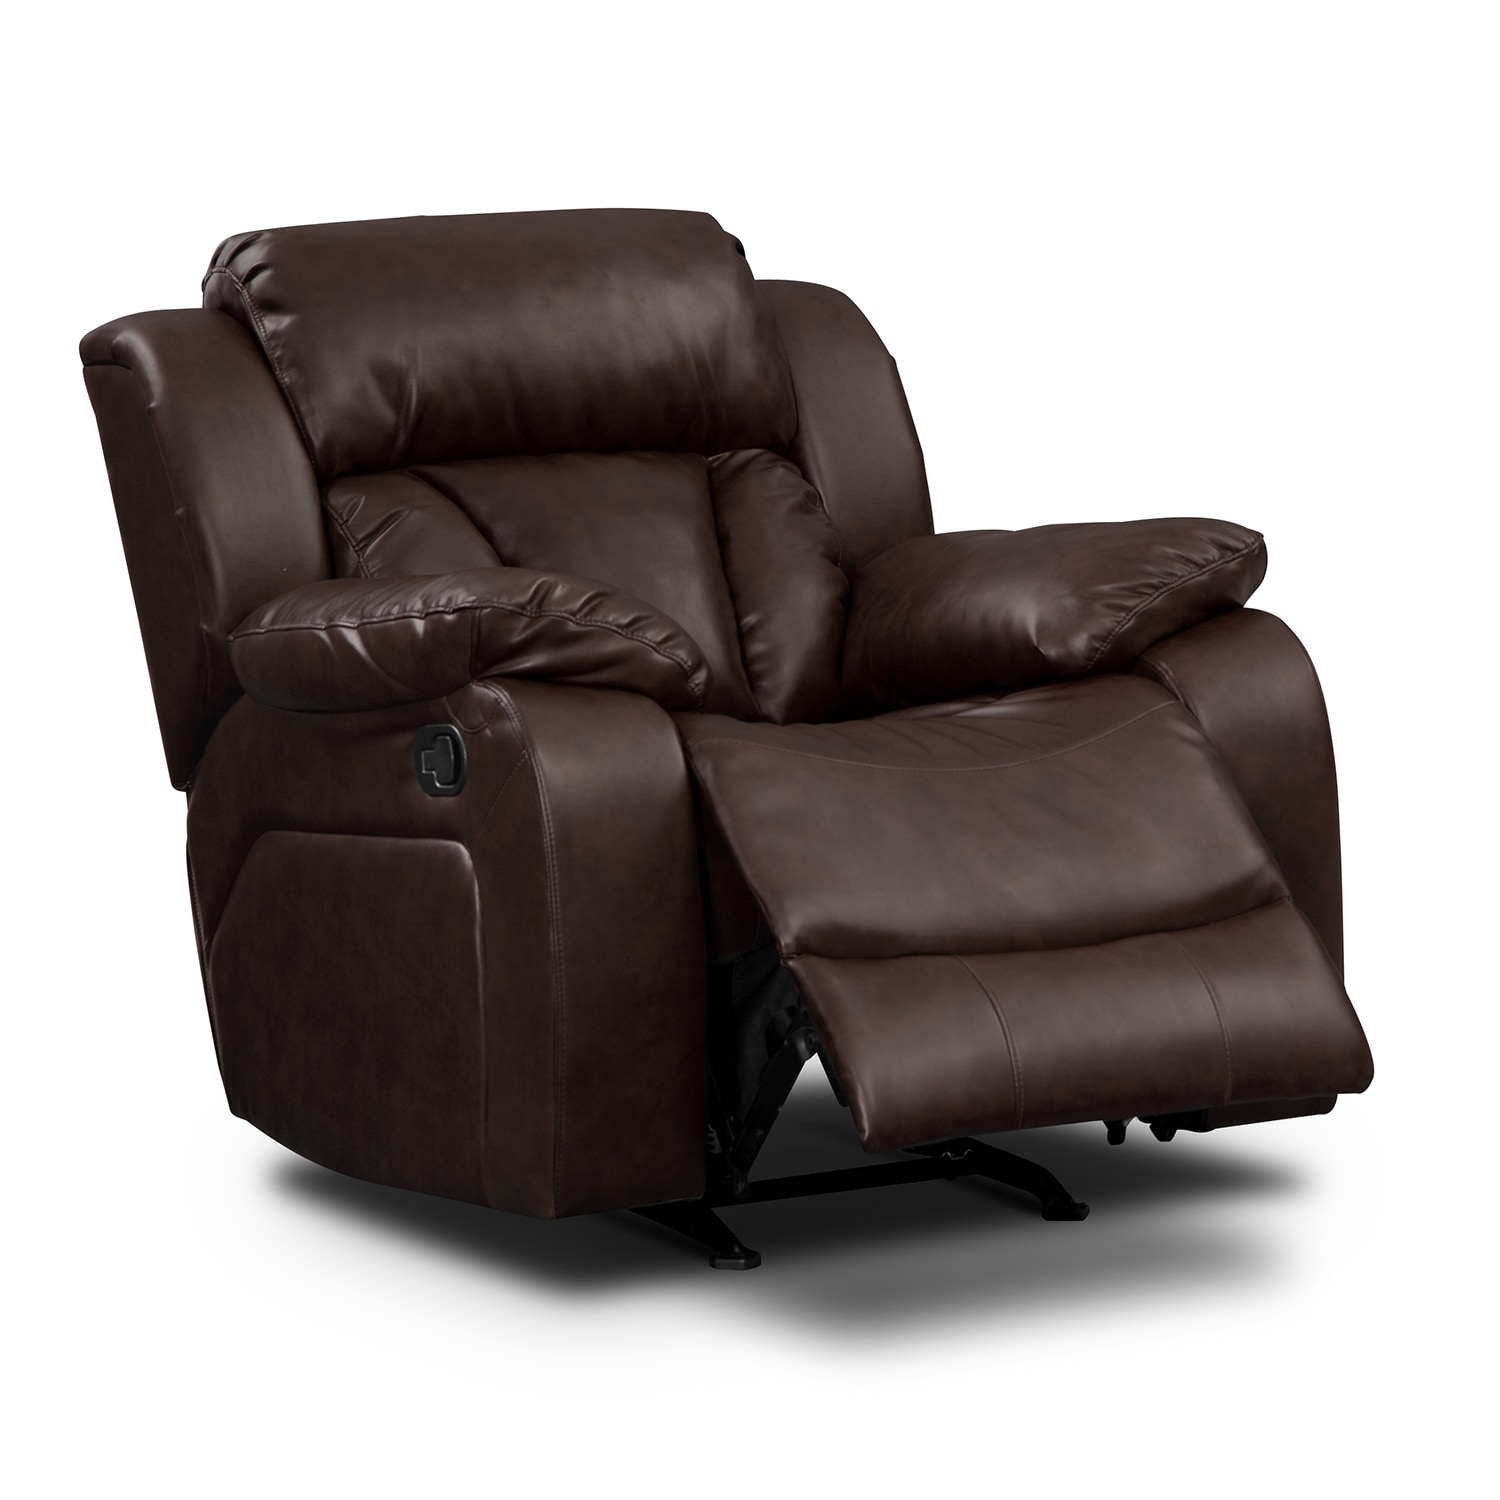 Maverick Leather Rocker Recliner Value City Furniture